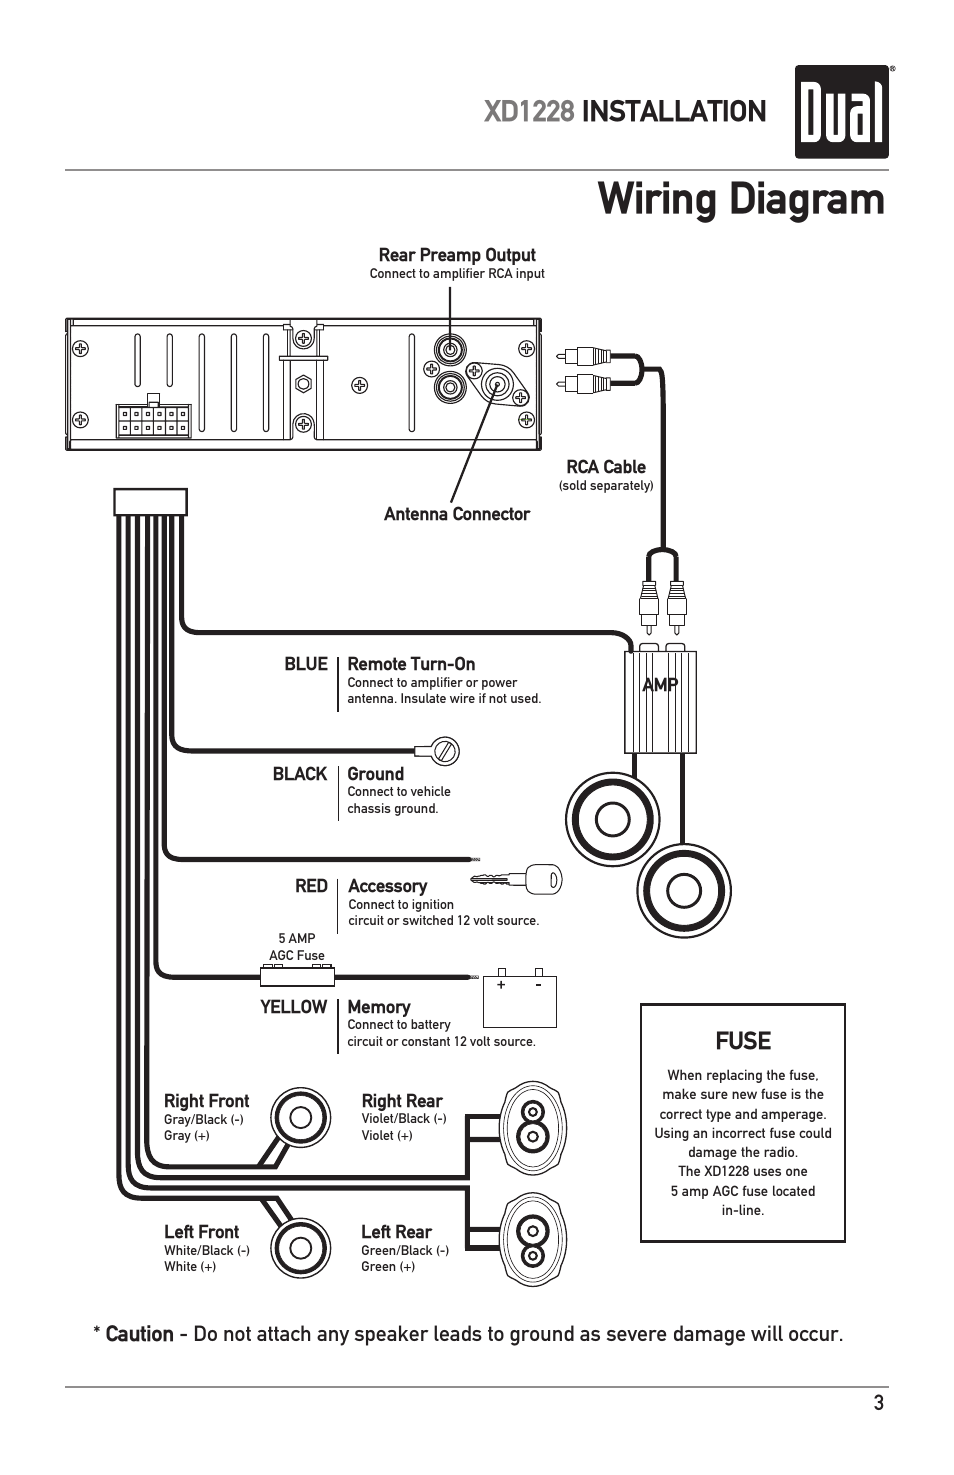 [WRG-0325] 2011 Ford Ranger Car Stereo Wiring Diagram